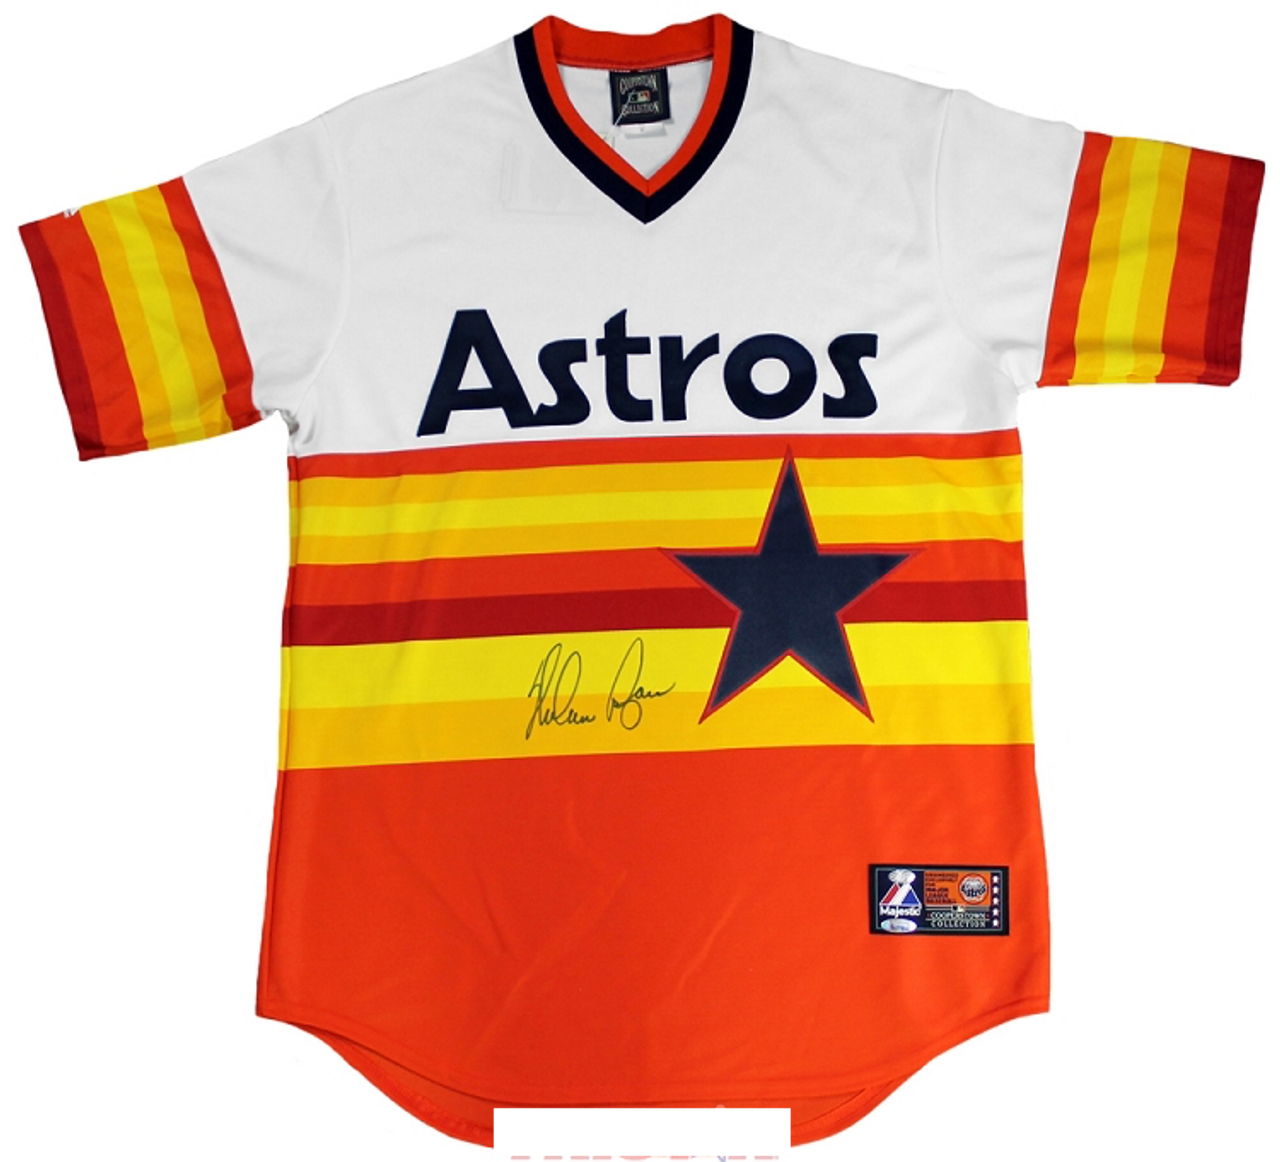 astros throwback jersey